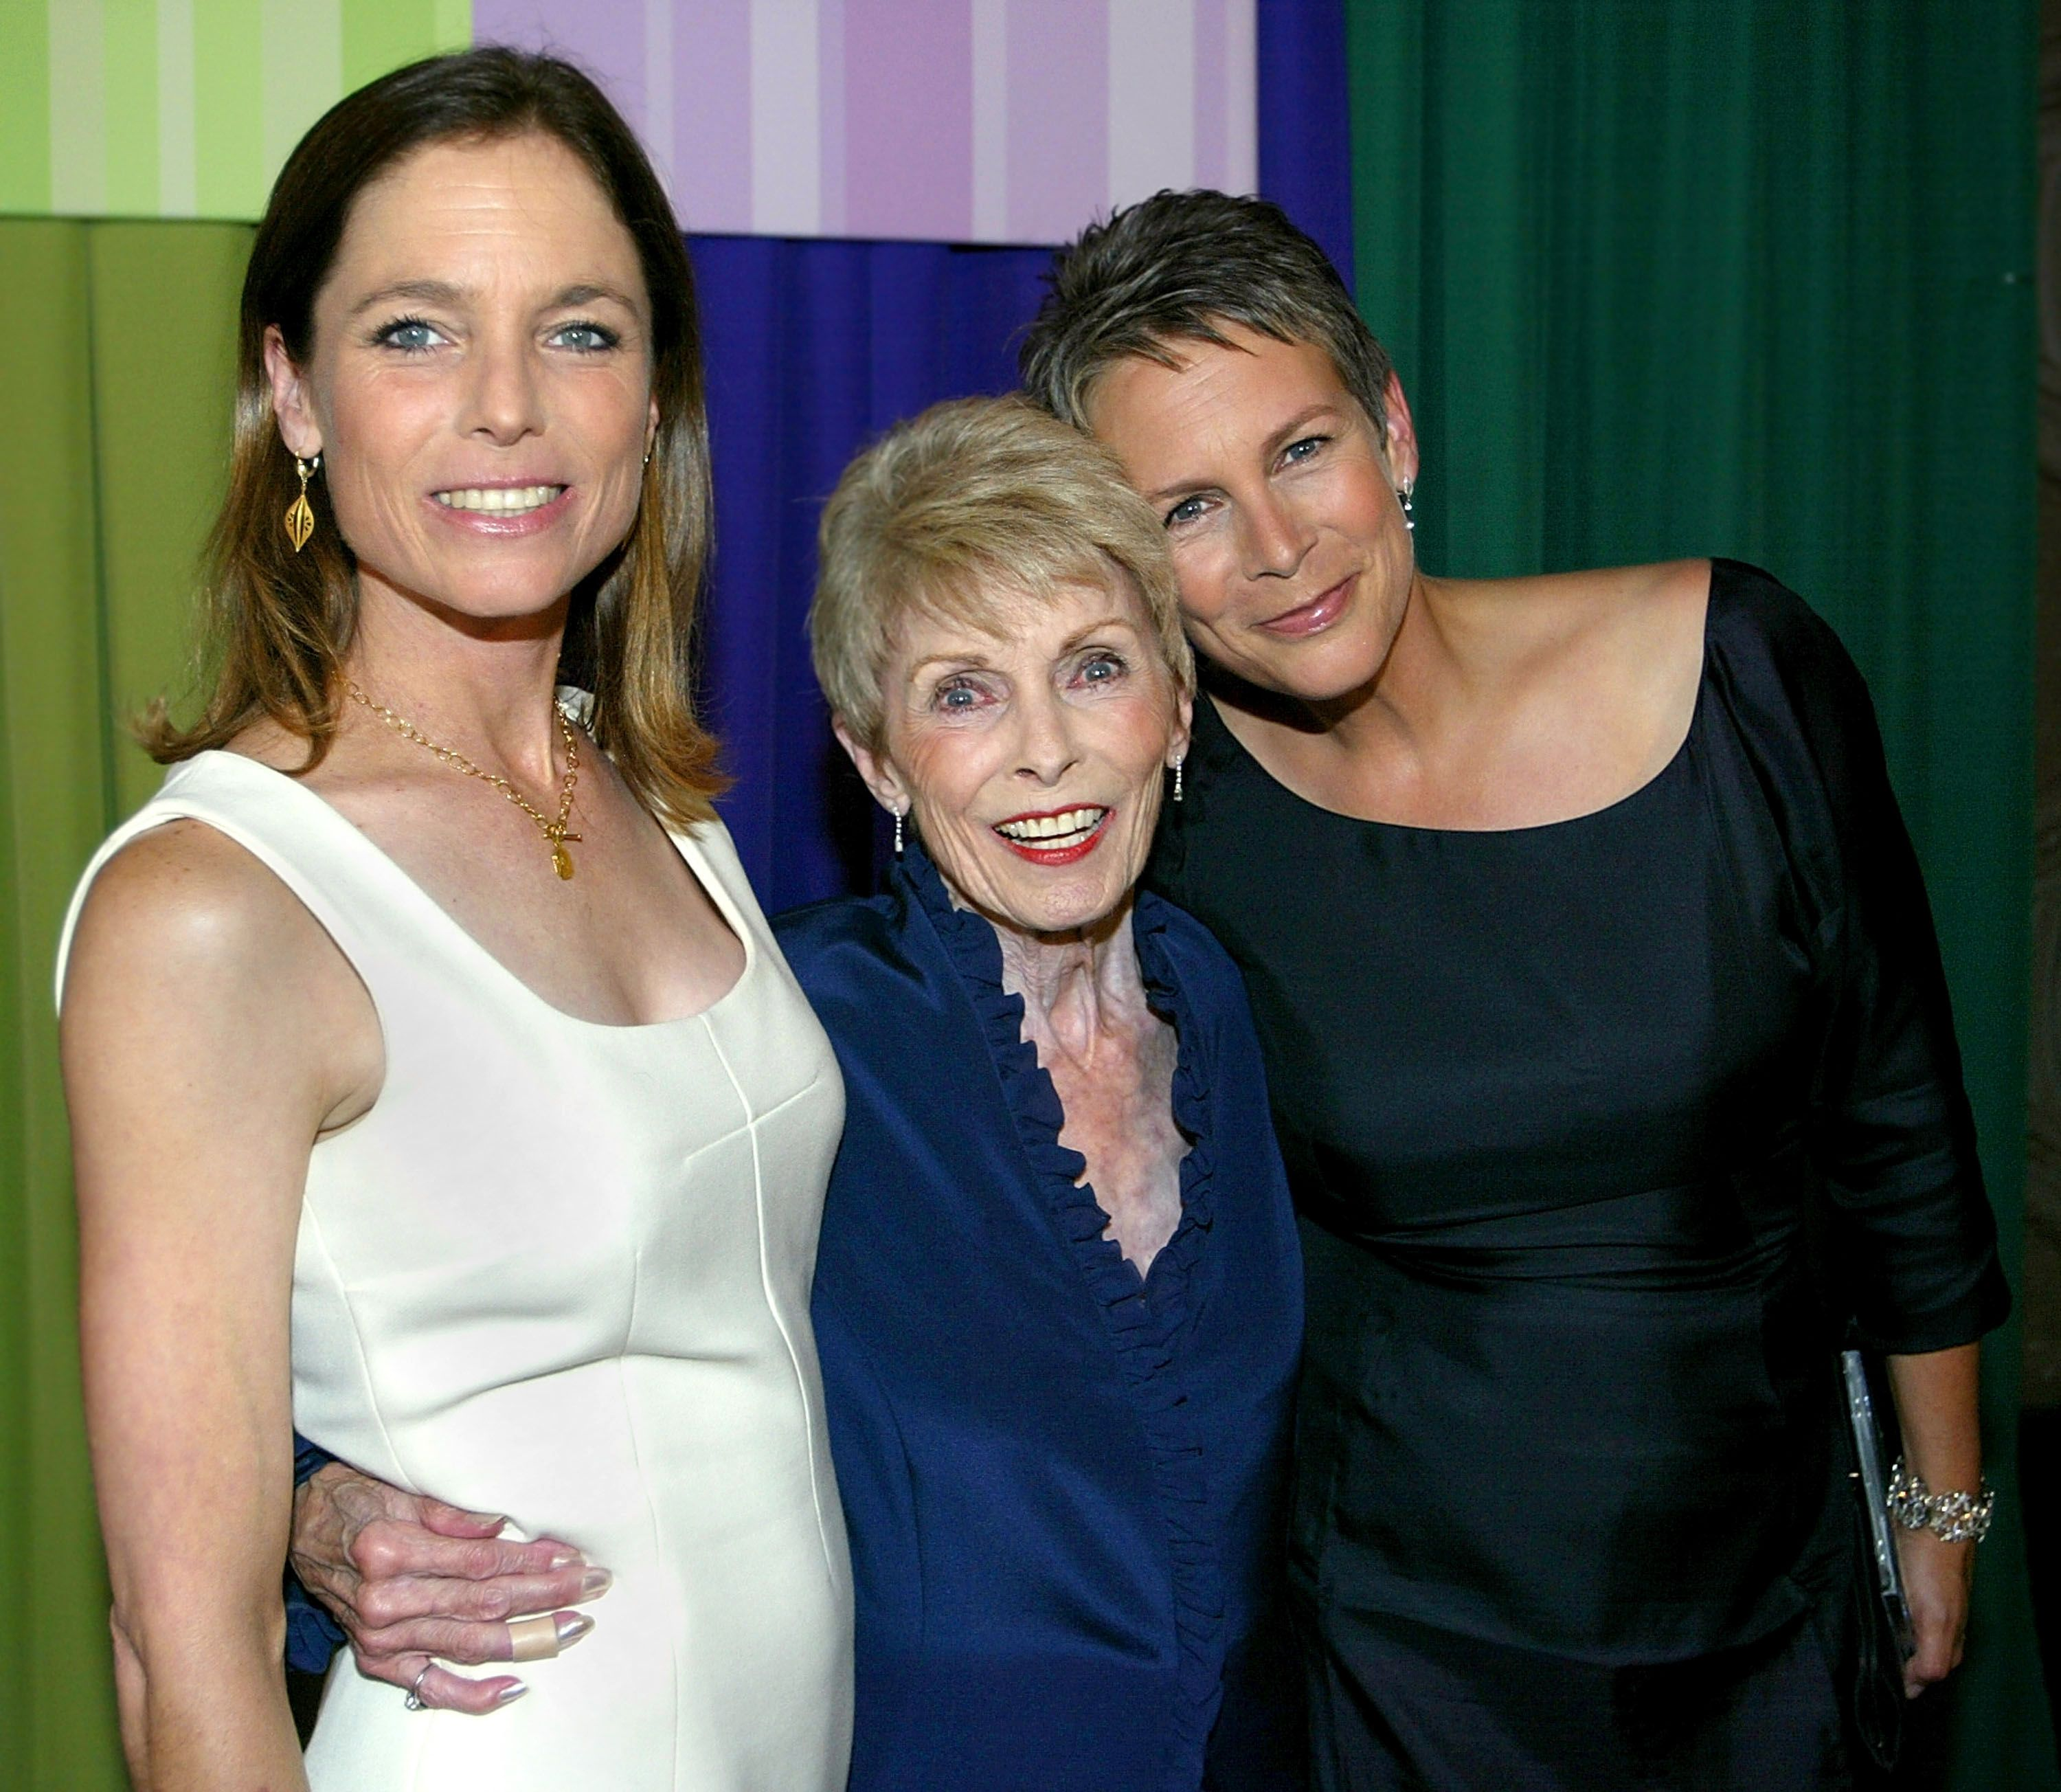 """Jamie Lee Curtis with mother Janet Leigh and sister Kelly at the premiere of the film """"Freaky Friday"""" in 2003 